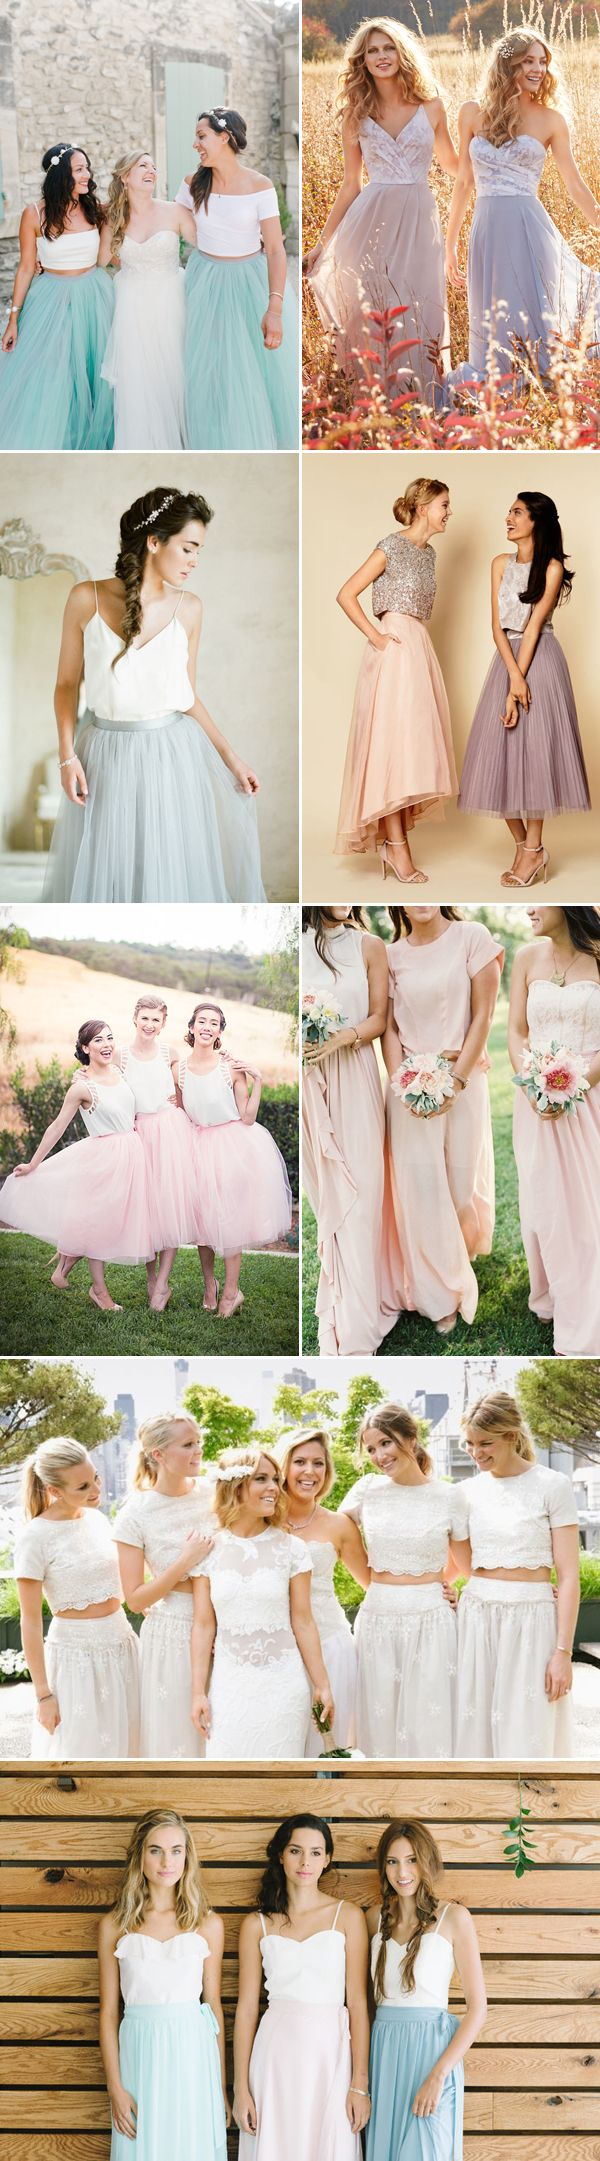 25 best unique bridesmaid dresses ideas on pinterest summer 2016 bridesmaid dress trends youll love ombrellifo Image collections